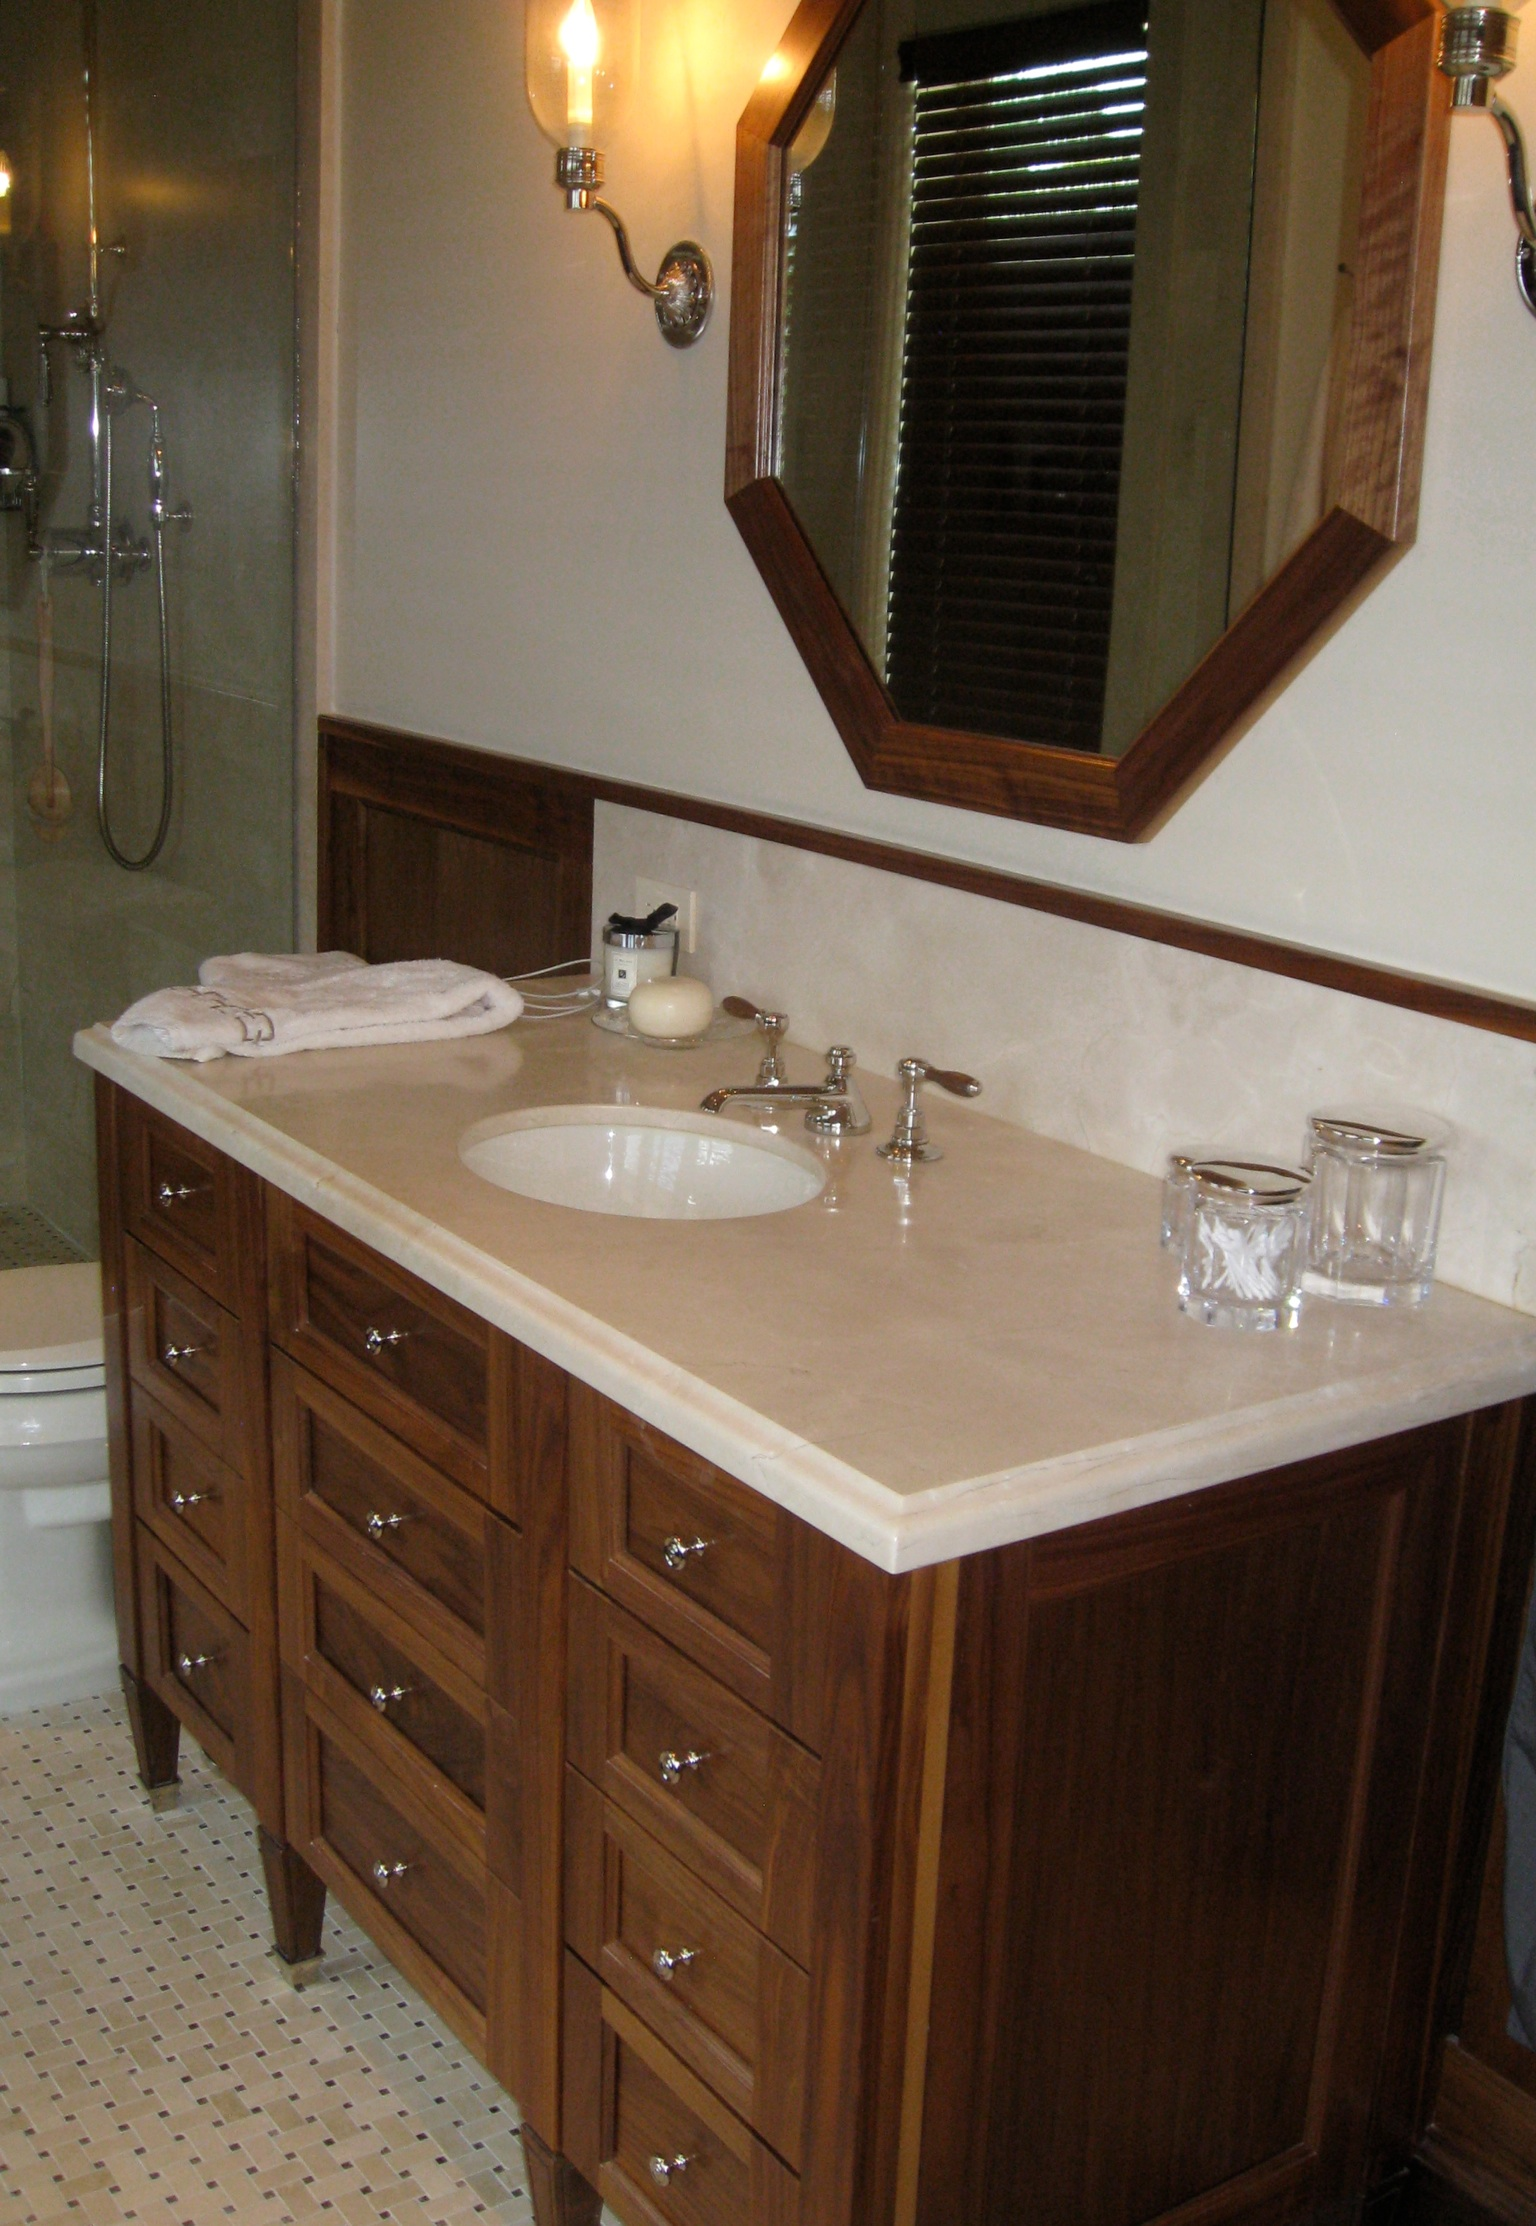 custom bathroom cabinets miami 002 j j cabinets. Black Bedroom Furniture Sets. Home Design Ideas